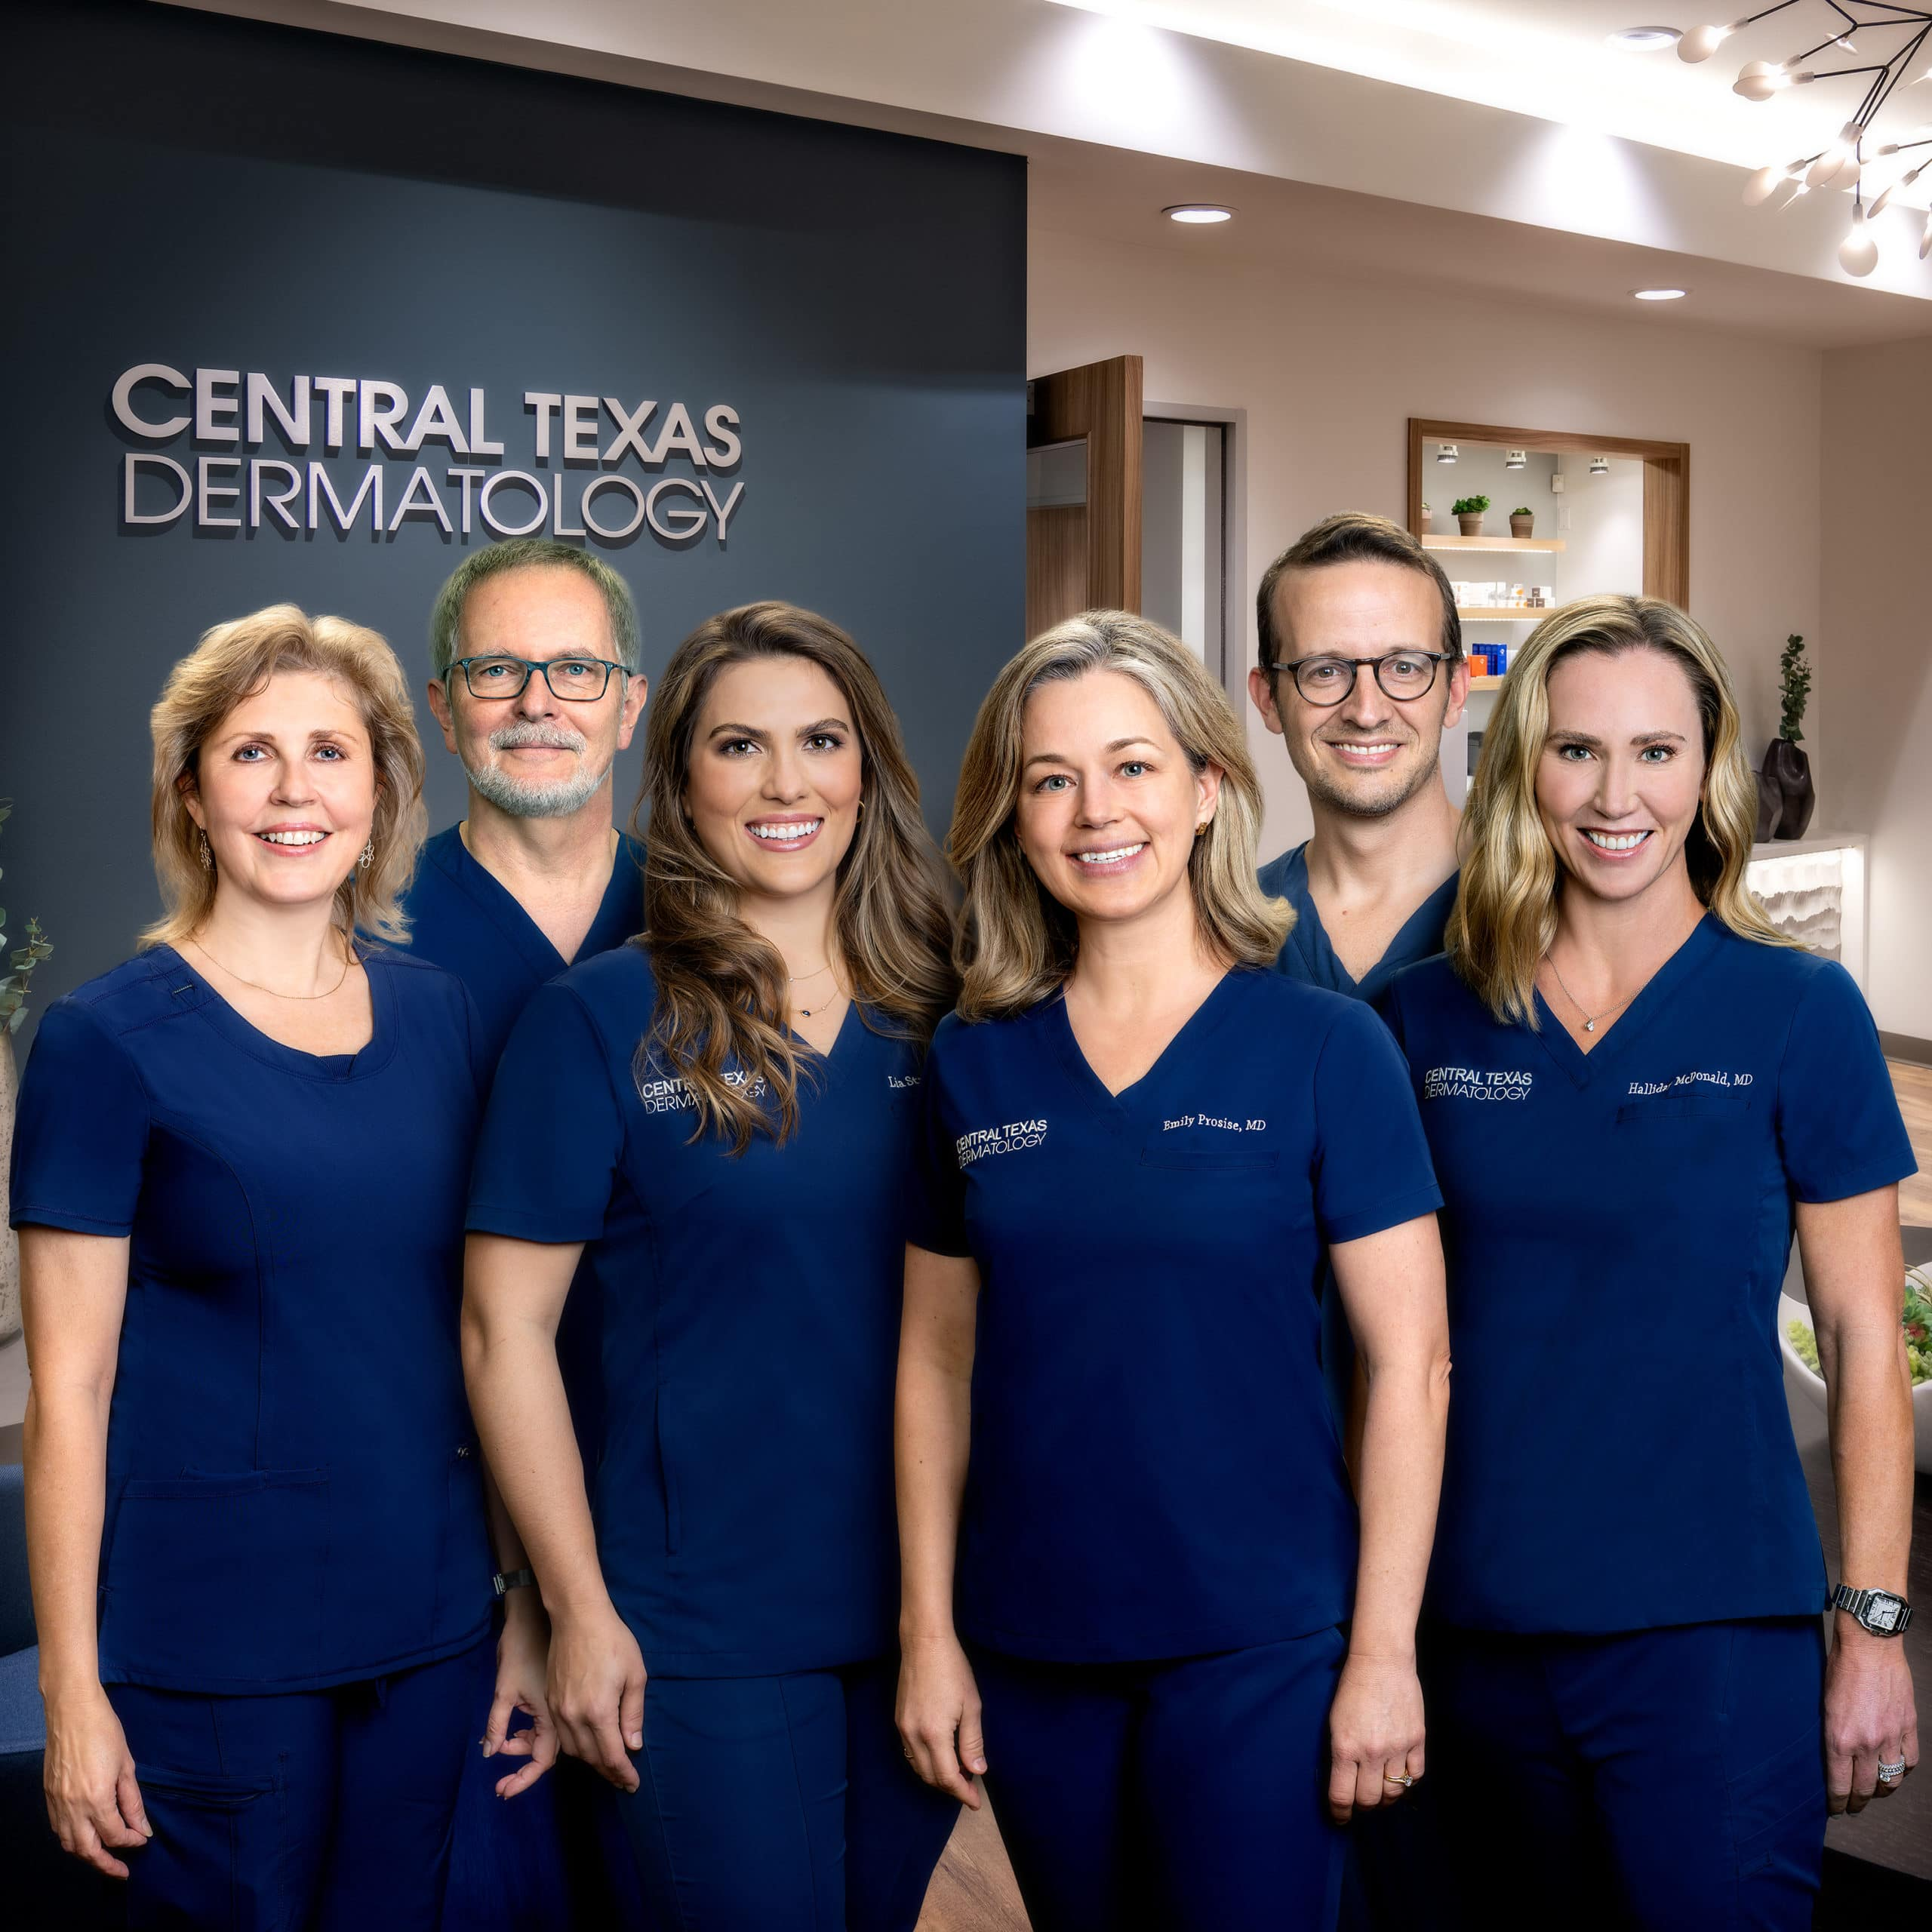 Central Texas Dermatology Staff Photo